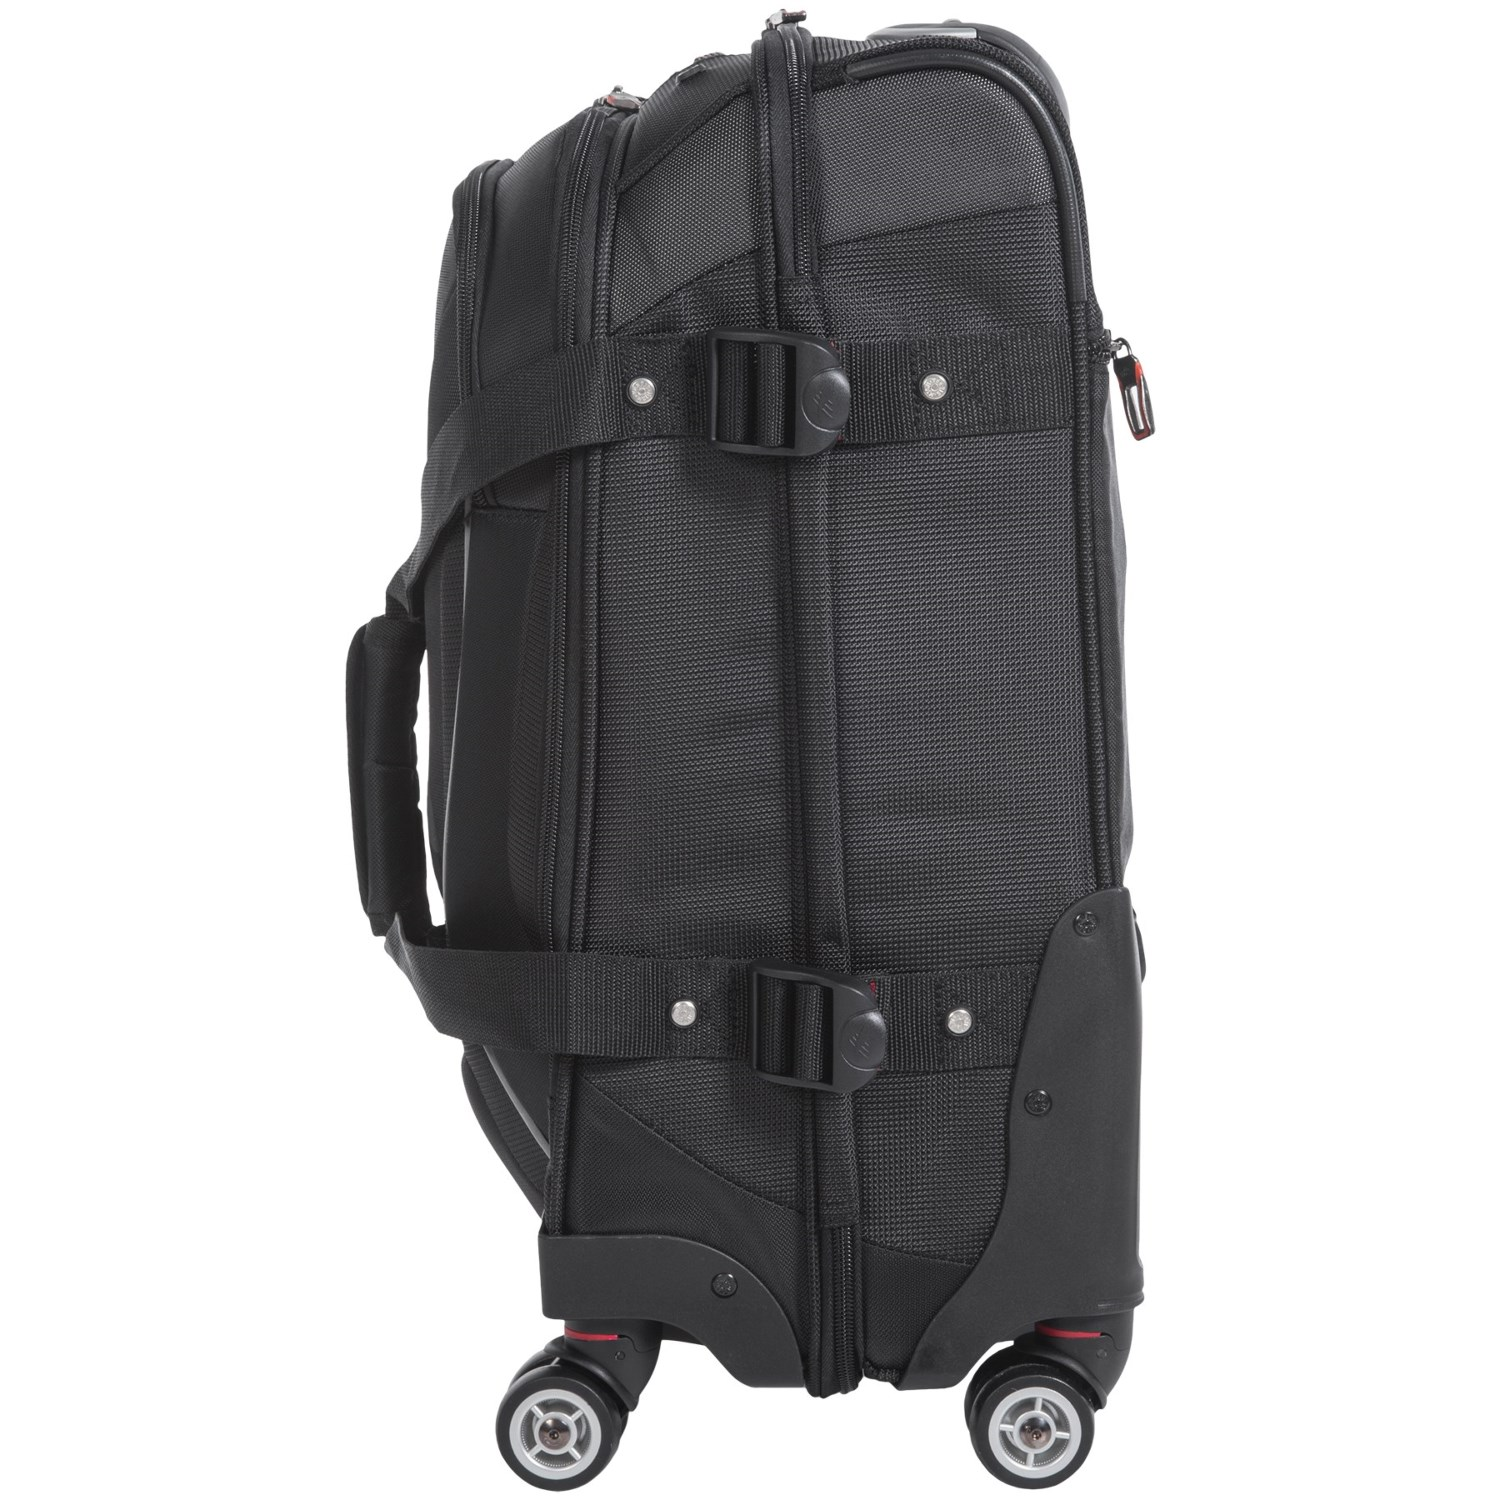 High Sierra At7 22 Carry On Spinner Duffel Bag Save 40